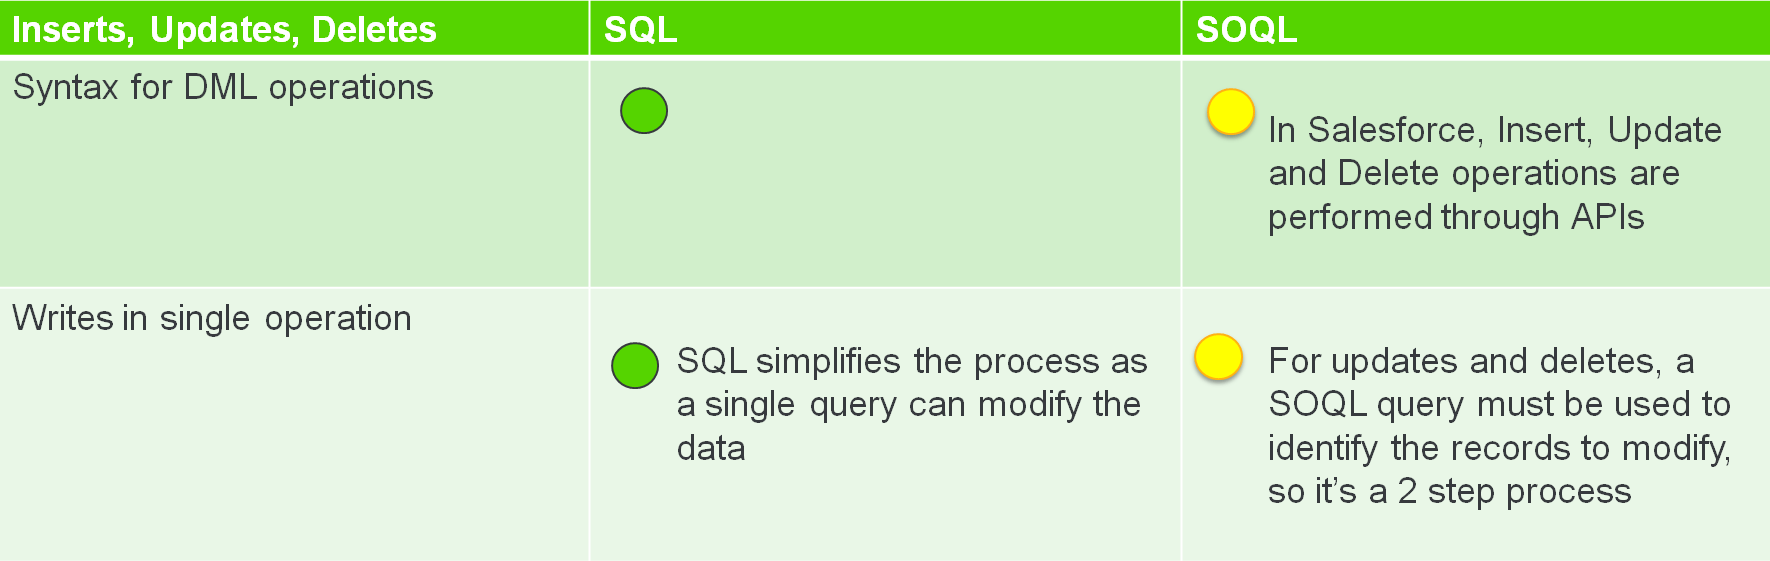 SQL or SOQL for Your Next Salesforce Analytics Project